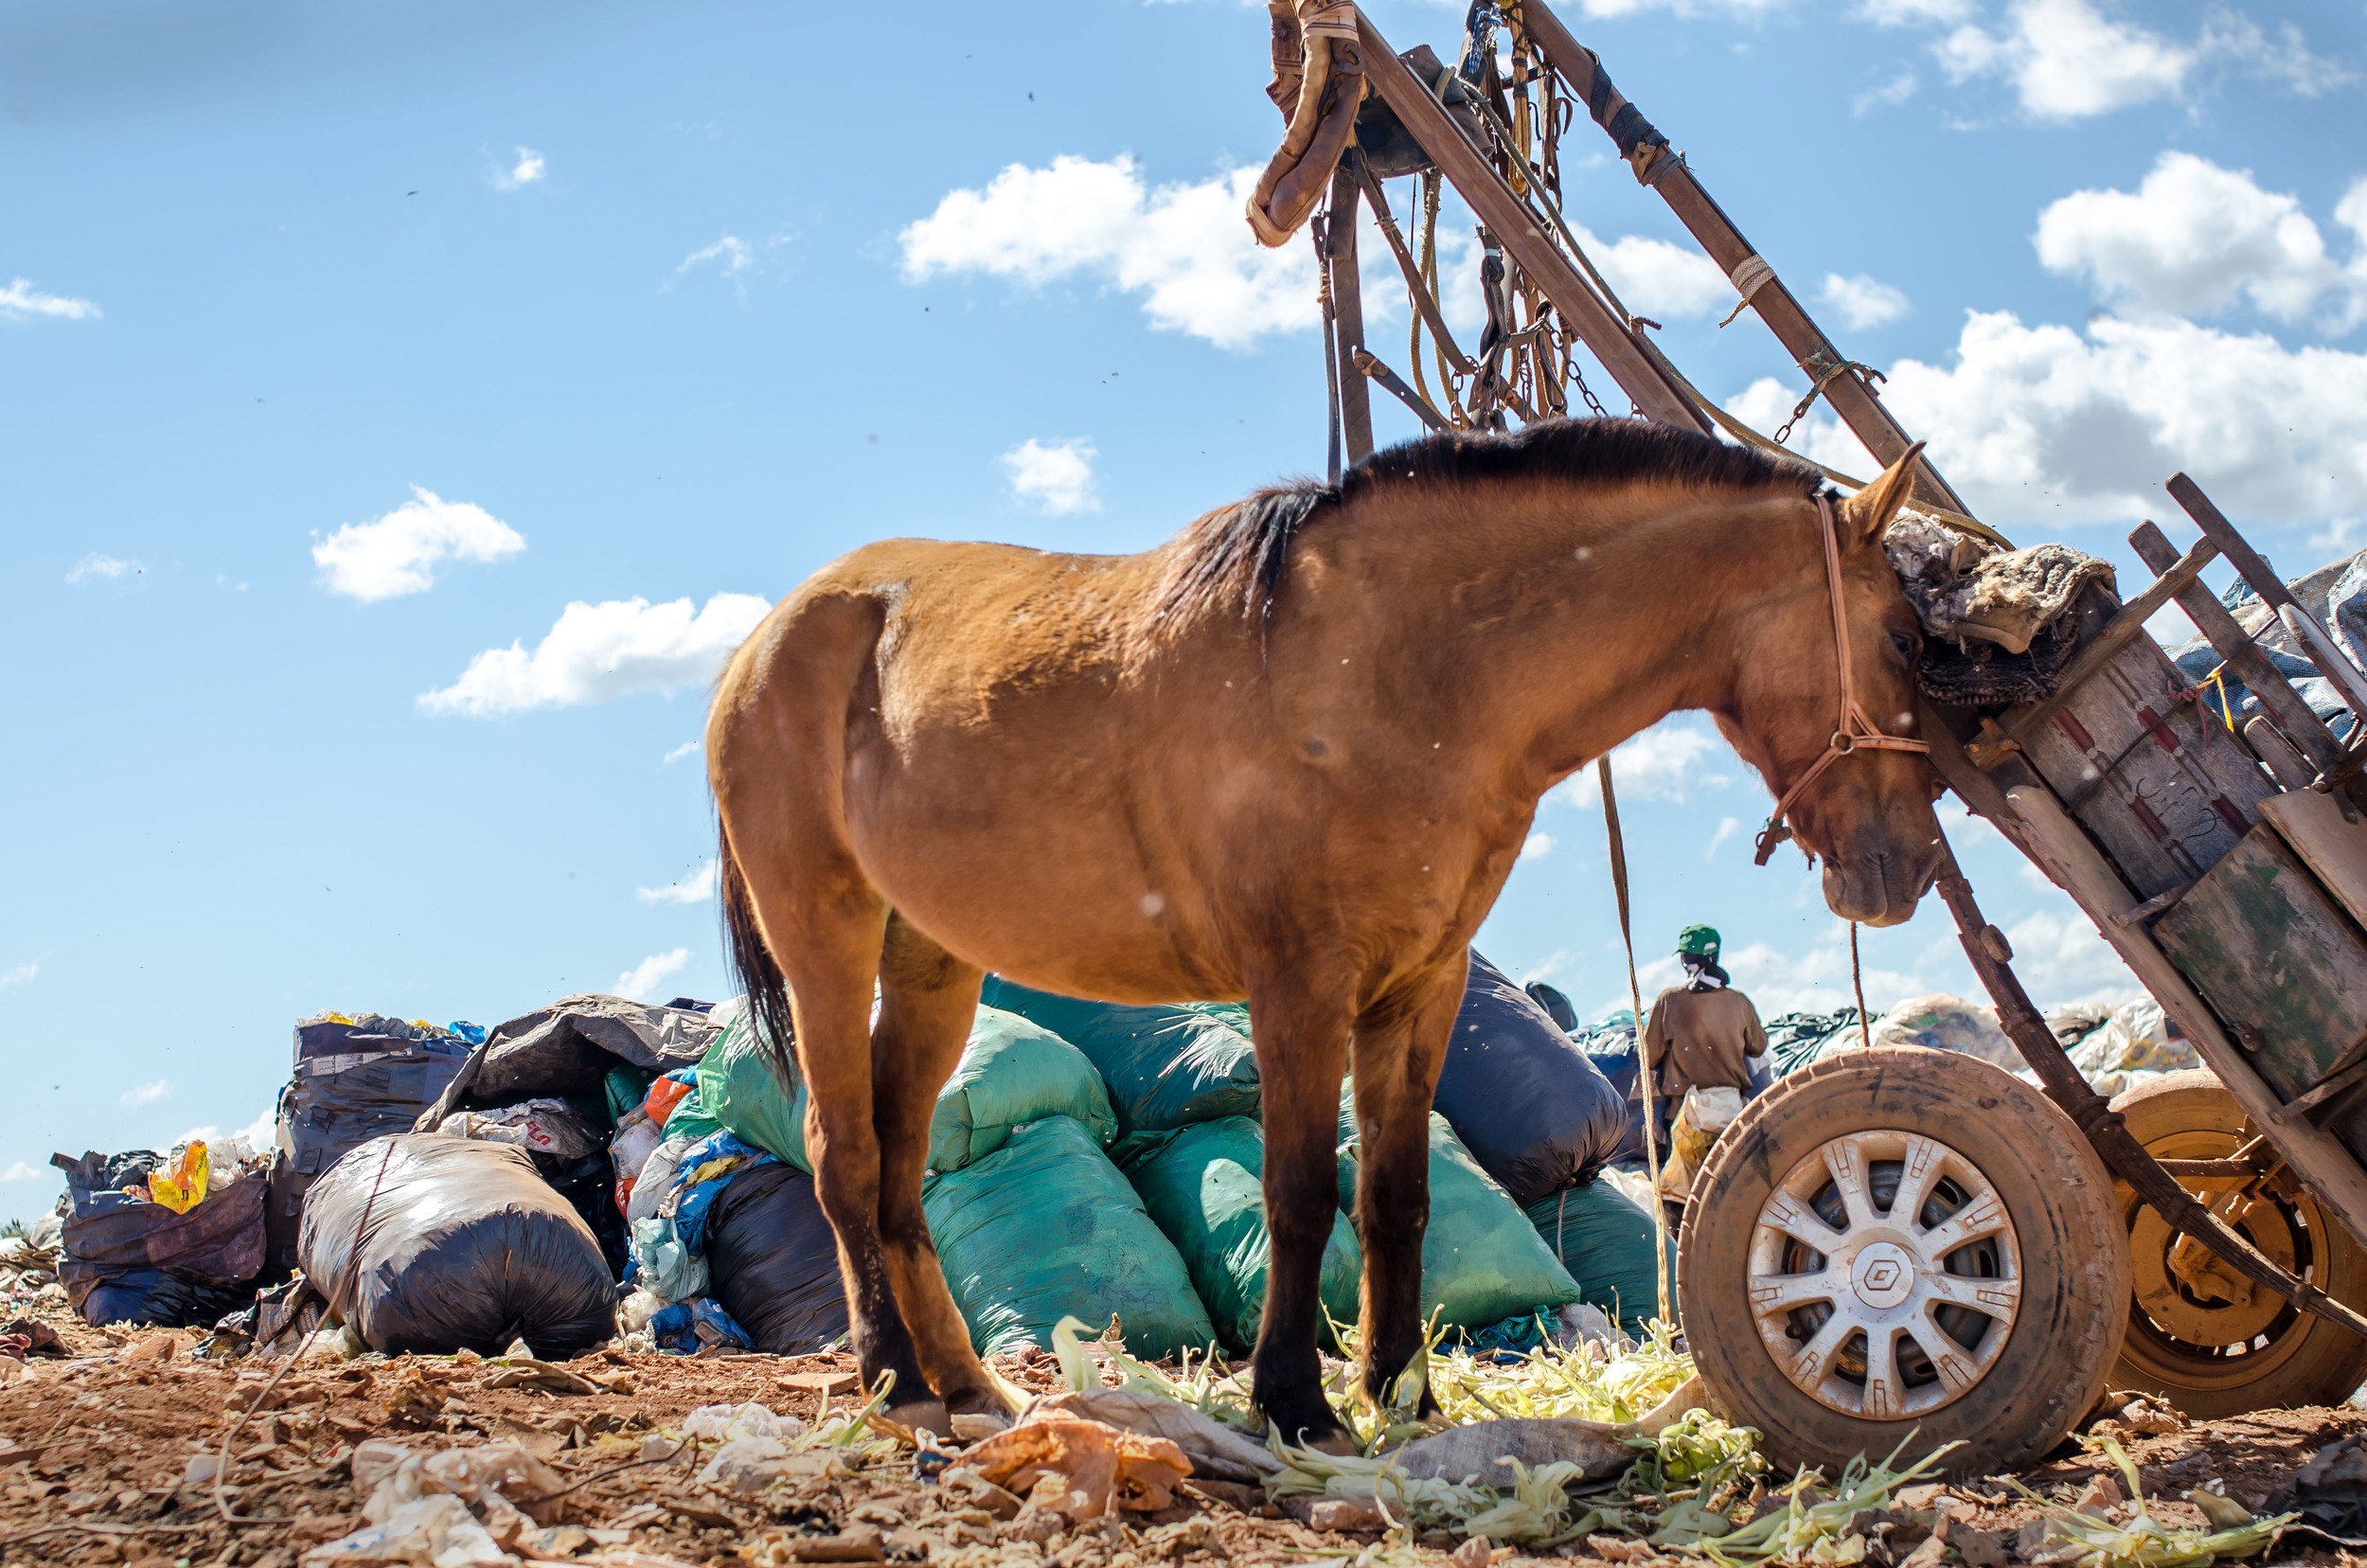 Horses and carts are sometimes used to transport trash. This one was so sweet, and enjoyingan afternoon rest.